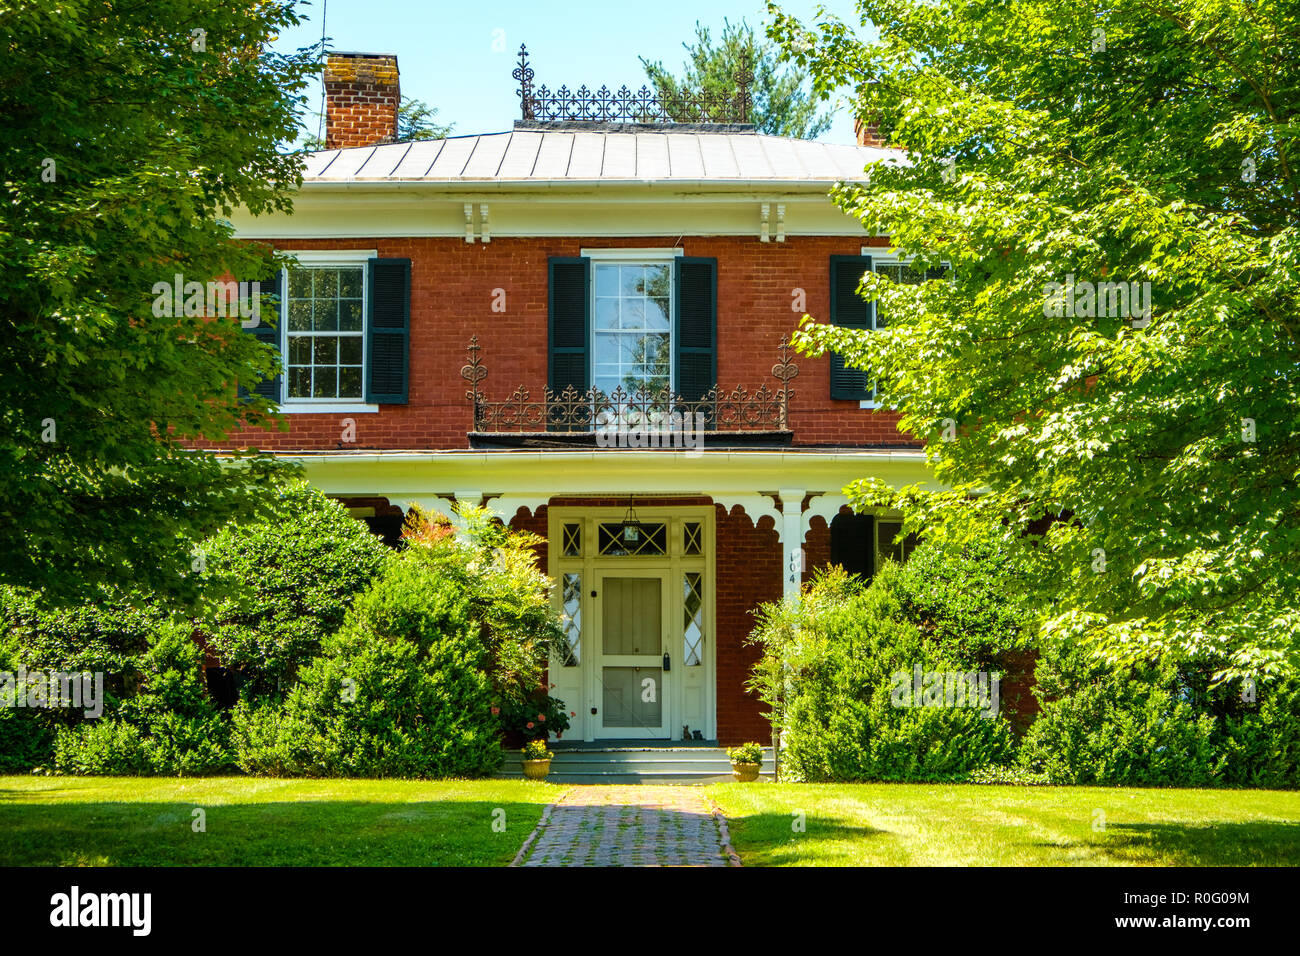 Edmondson-Penick House, 104 White Street, Lexington, Virginia - Stock Image